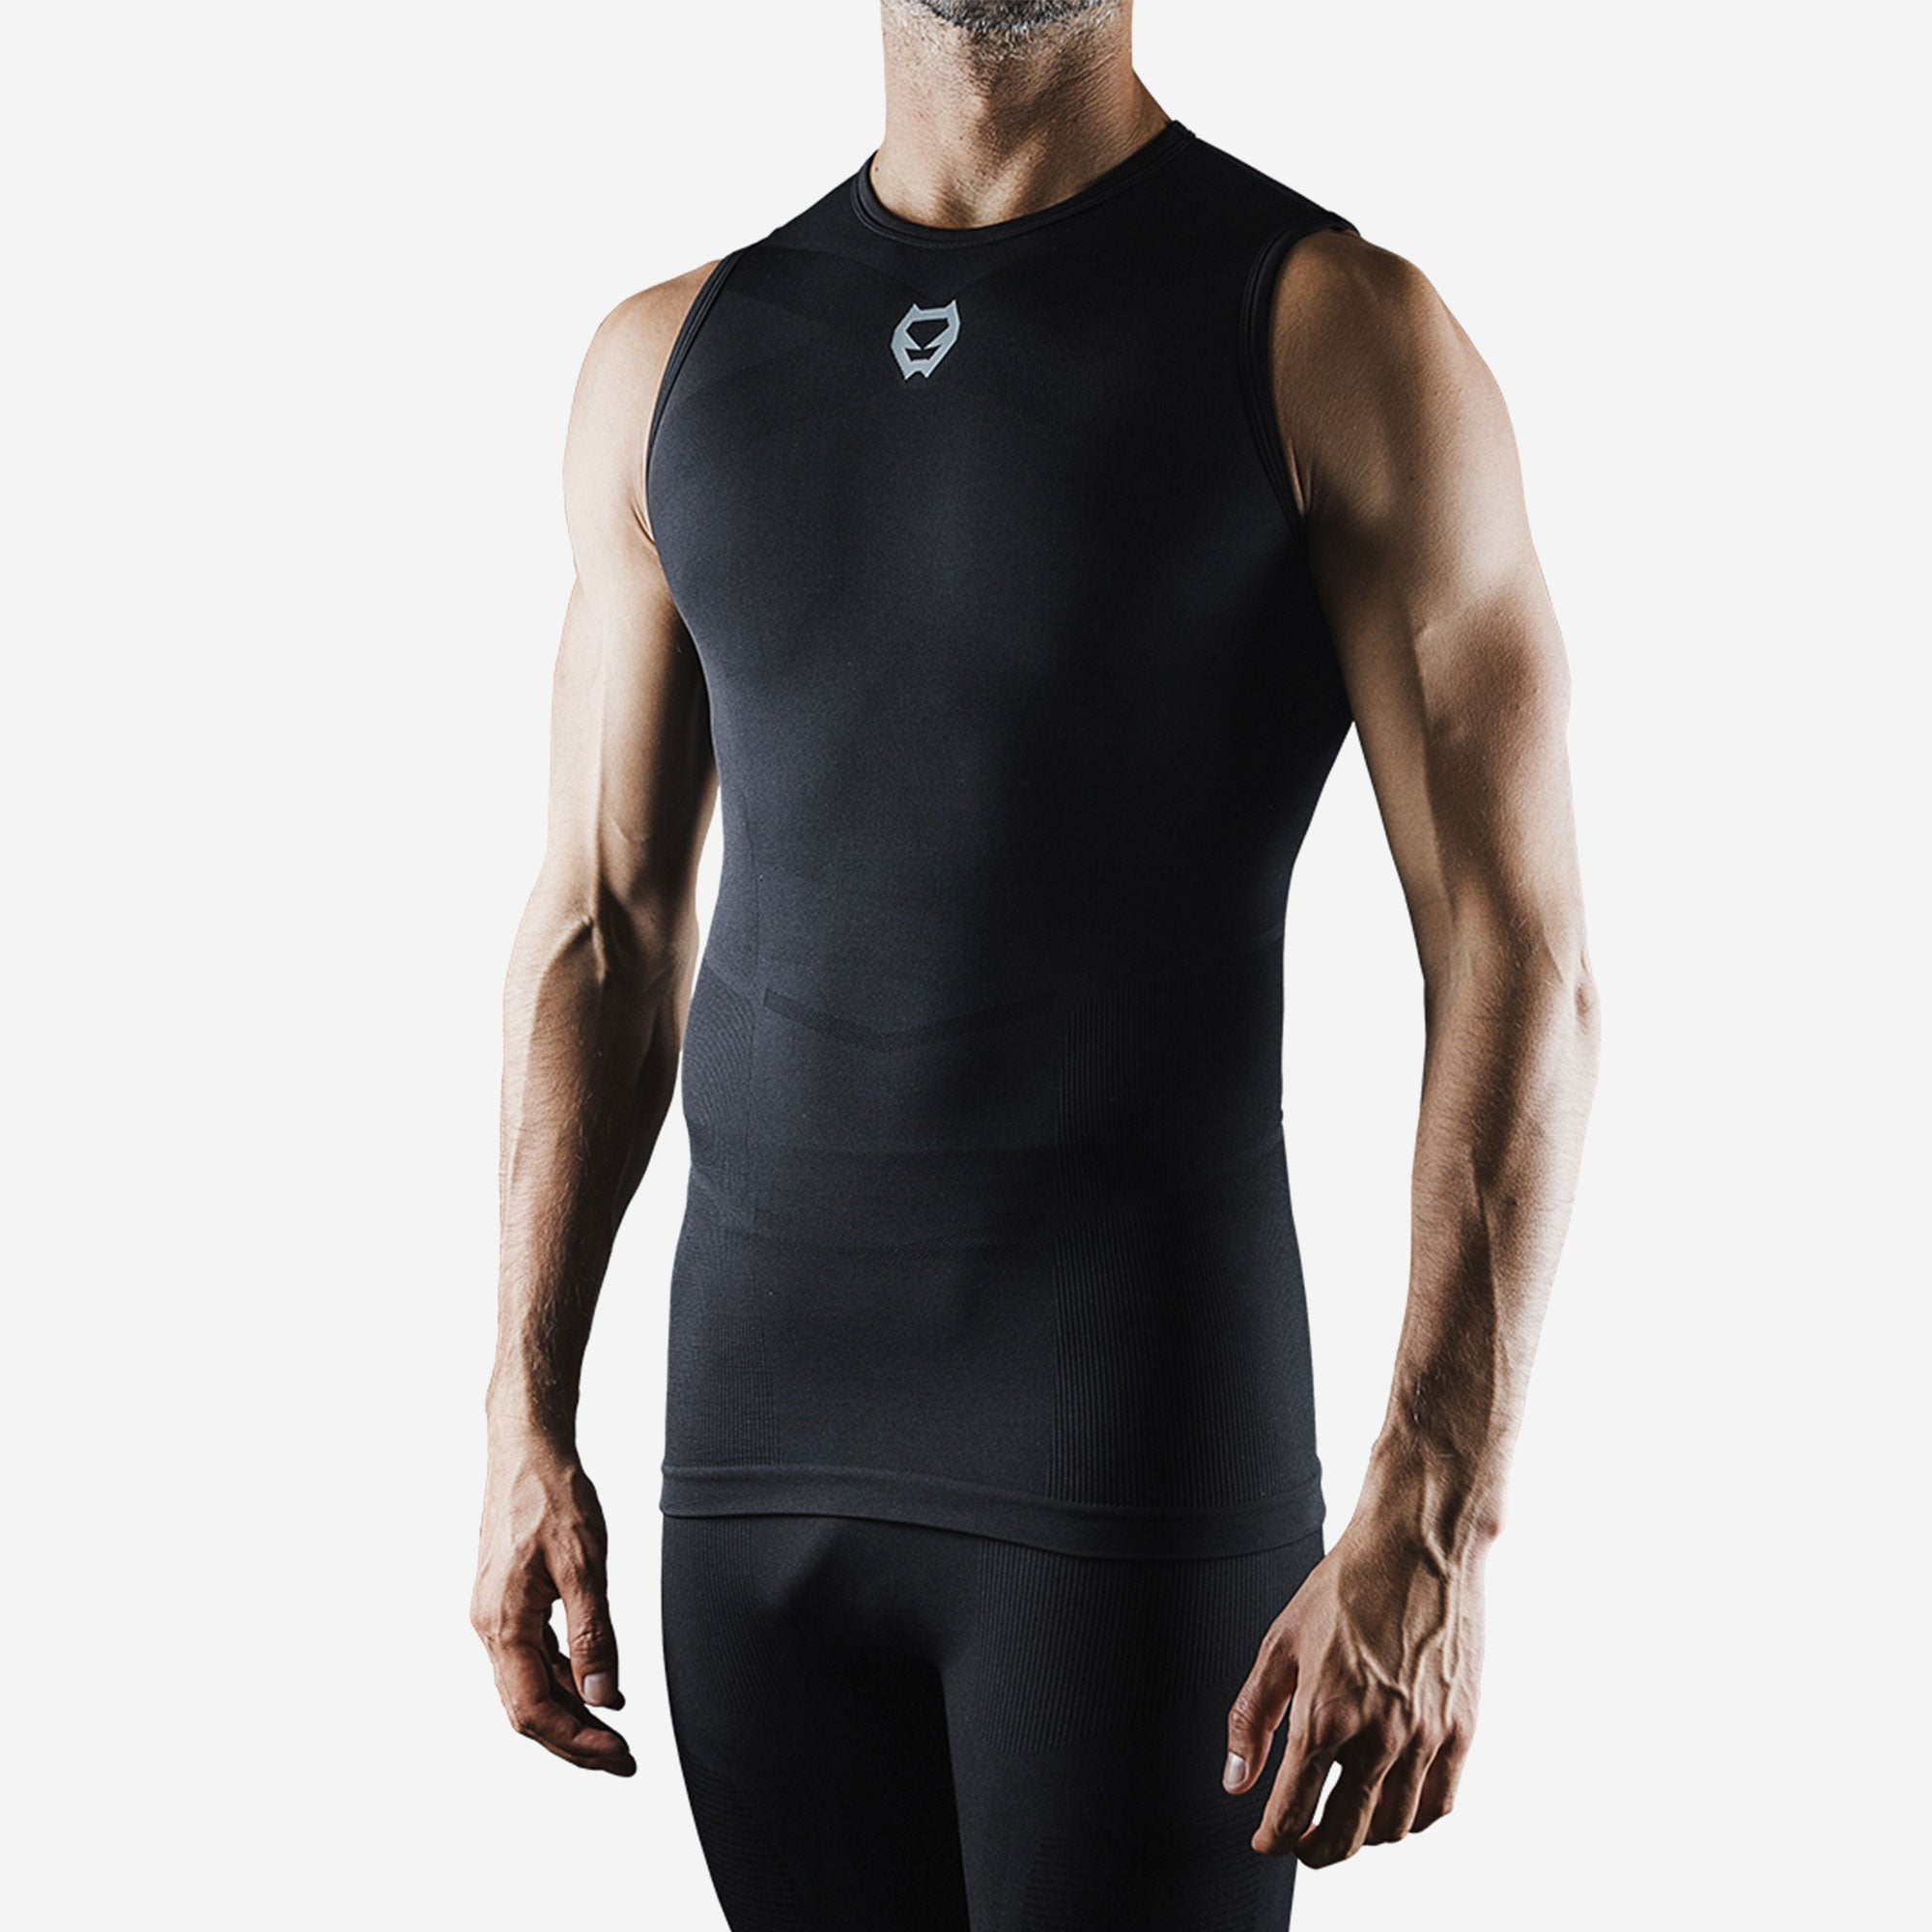 SAK STORM Compression Tank Top